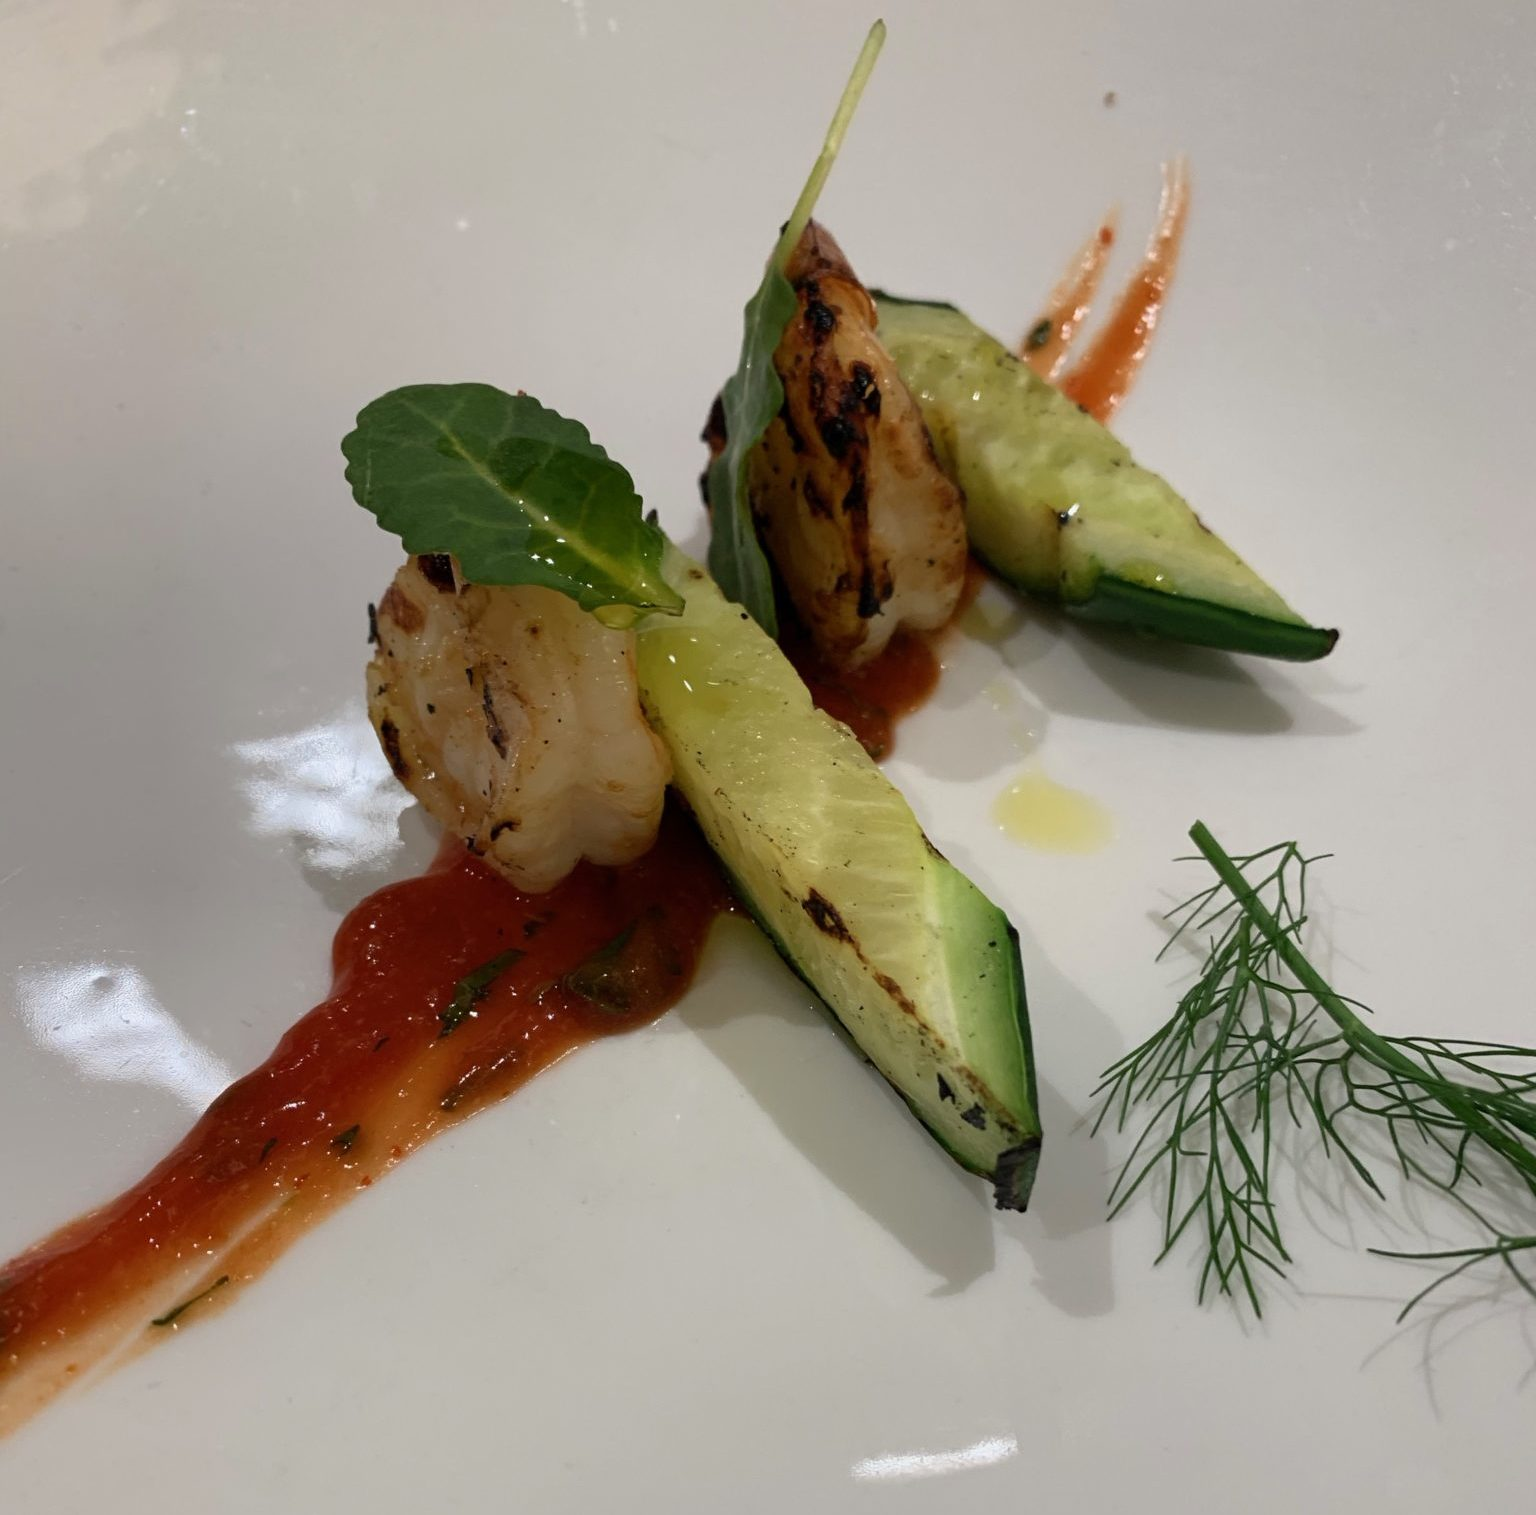 Shrimp and grilled cucumber